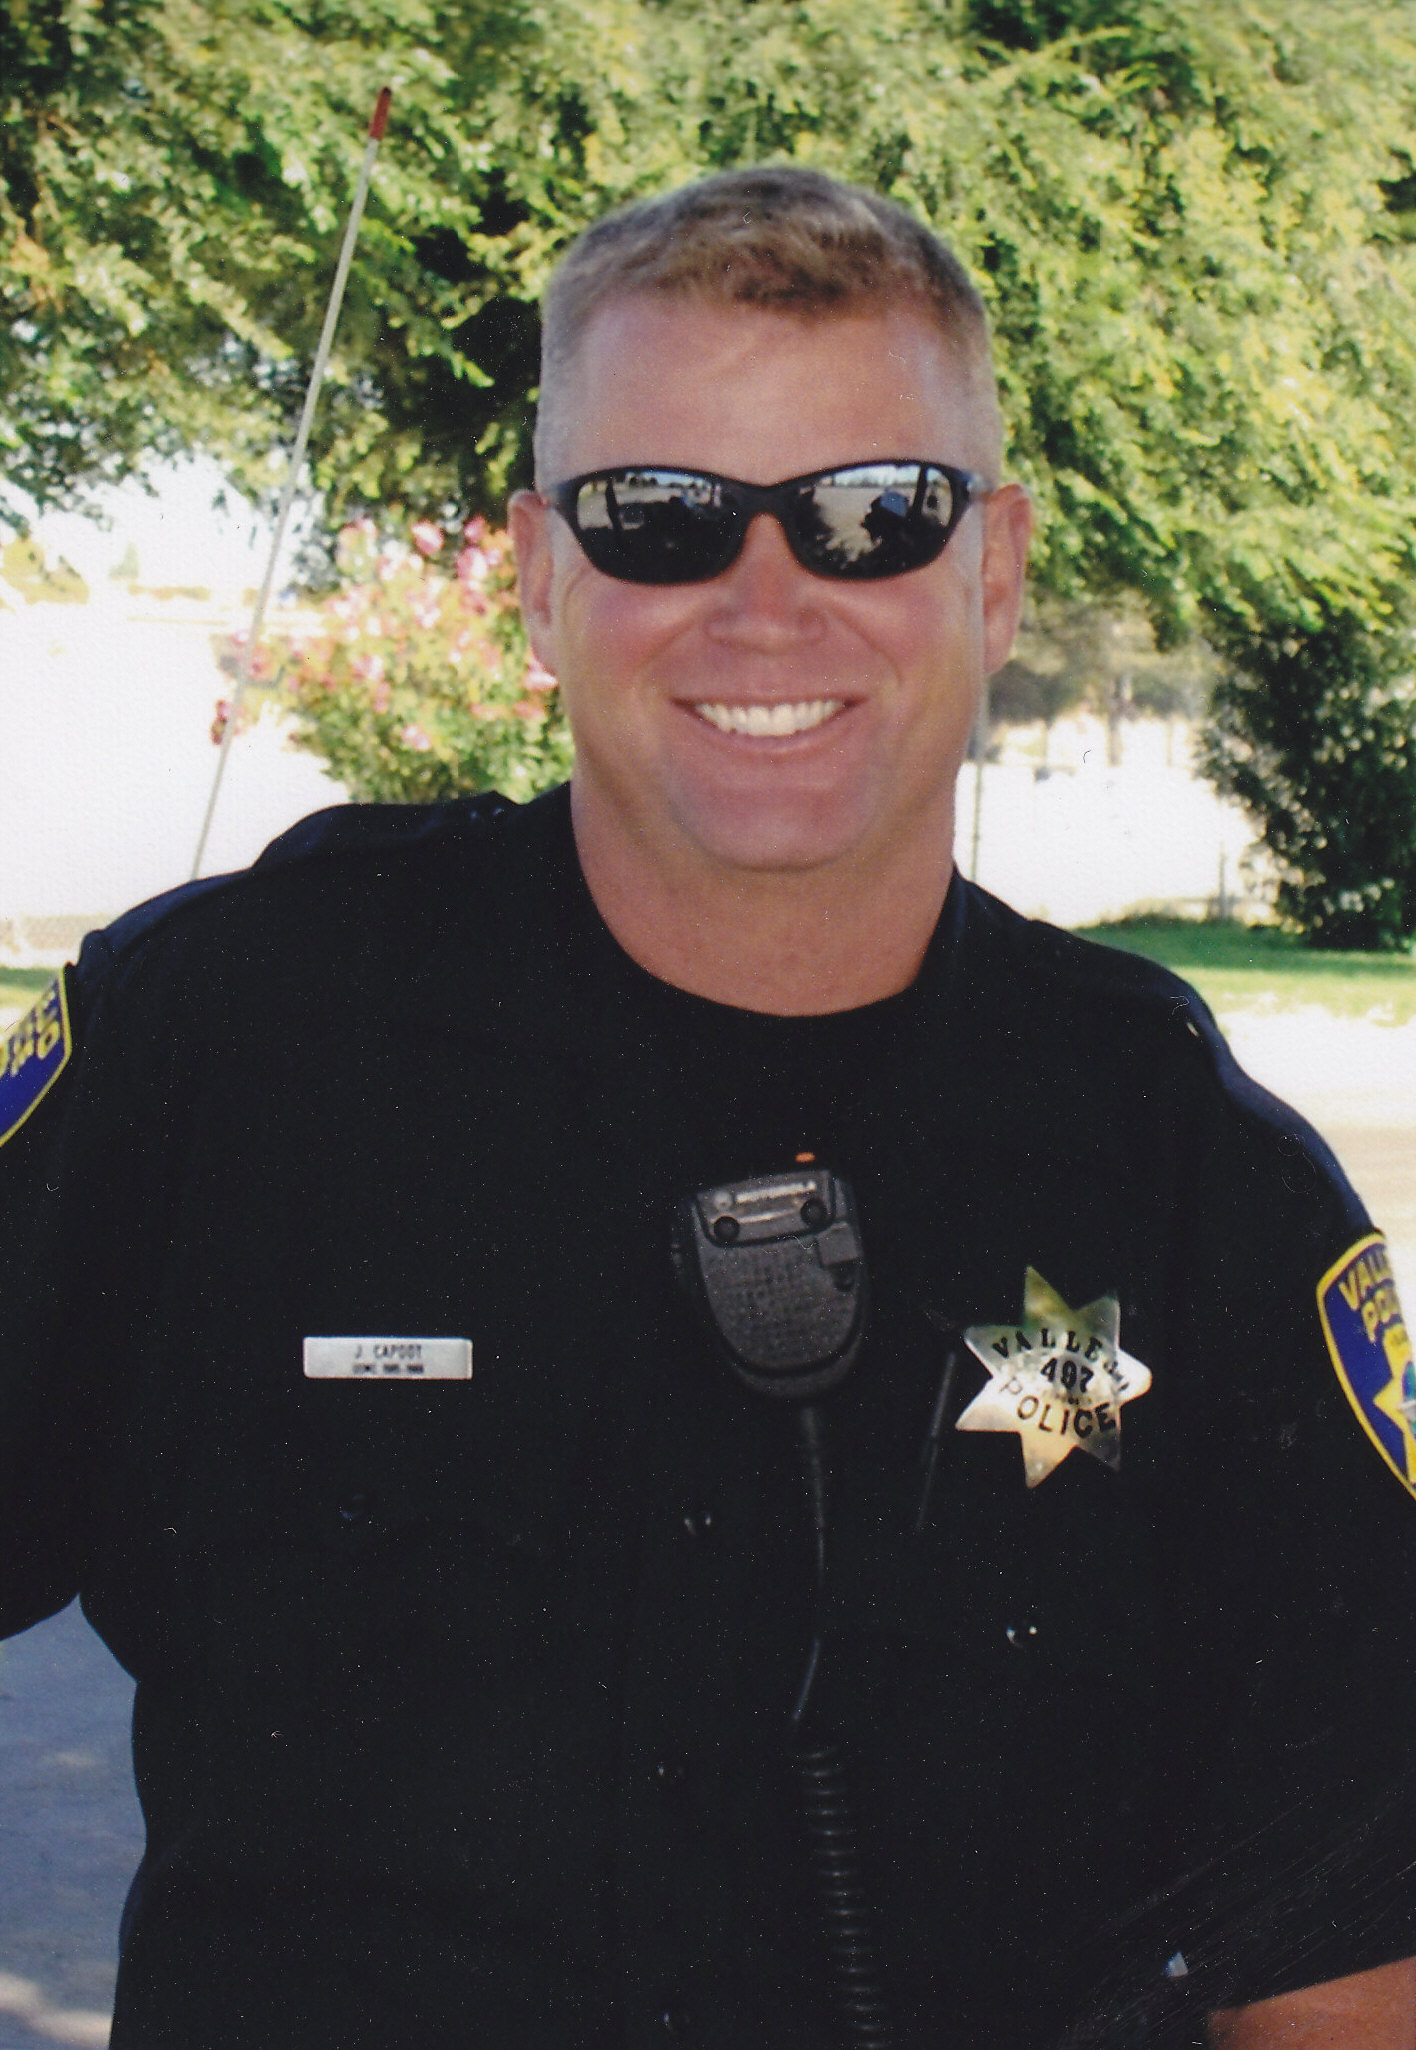 Solano – Officer Jim Capoot